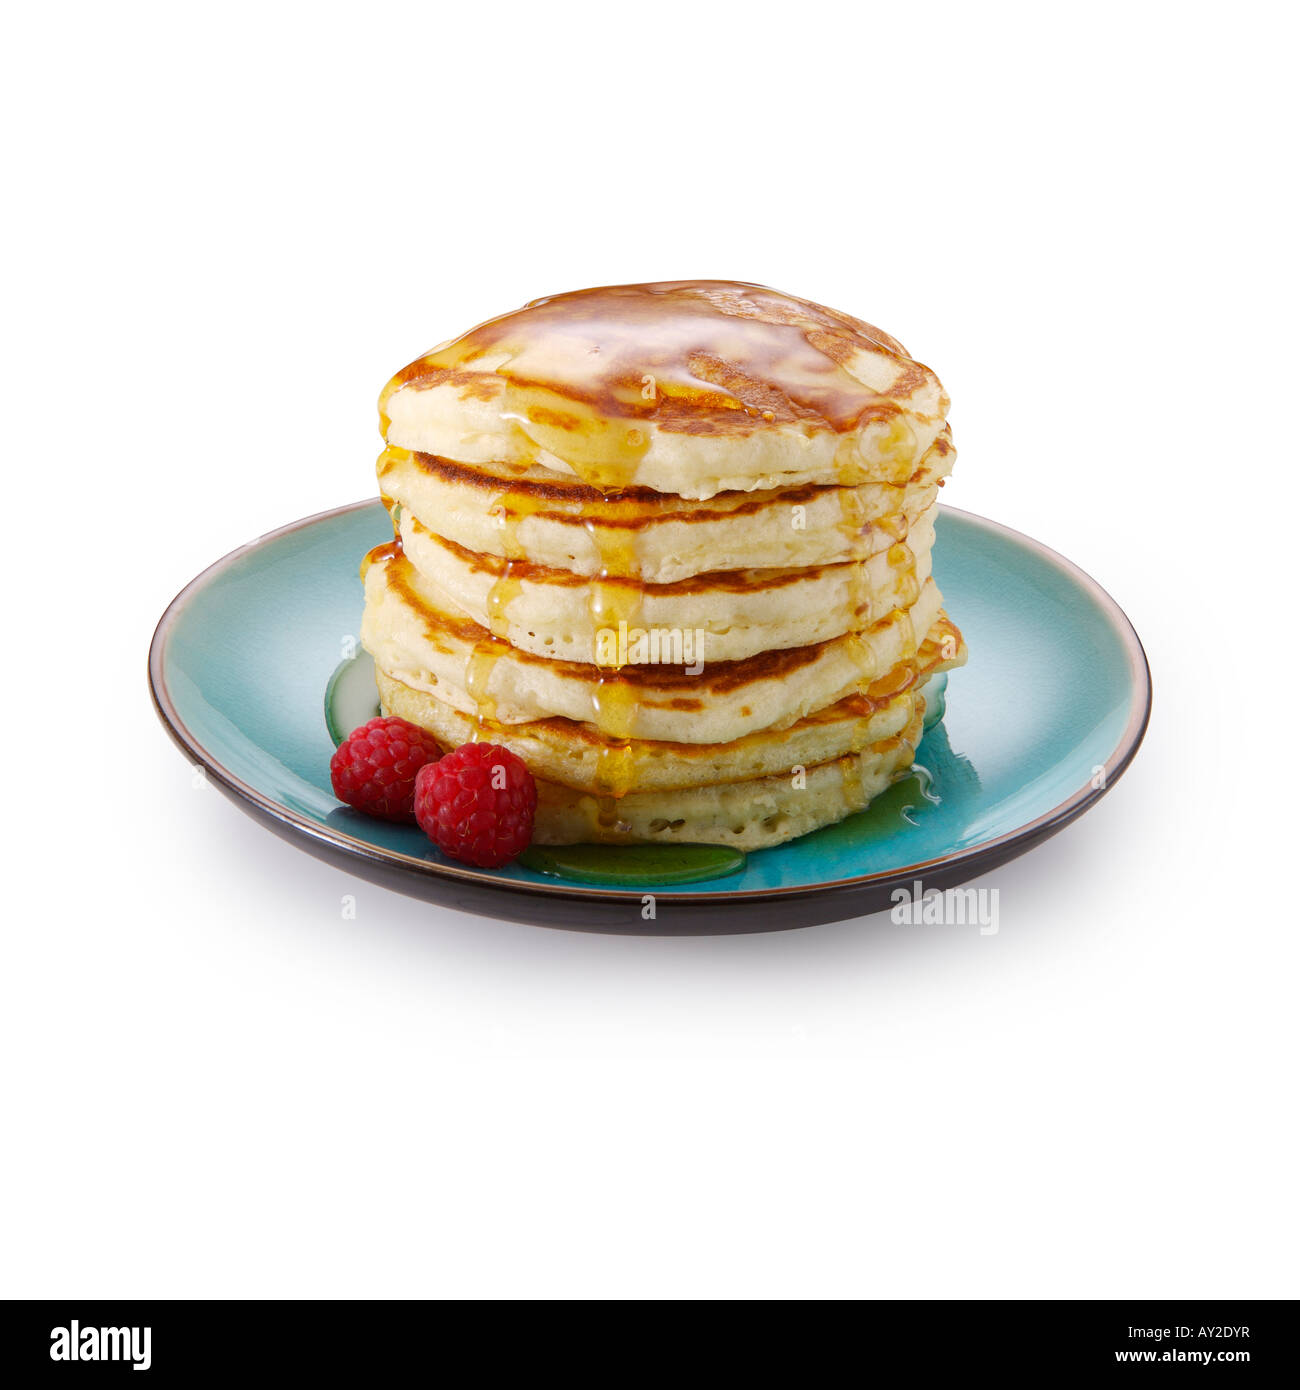 Pancakes with raspberries and maple syrup - Stock Image